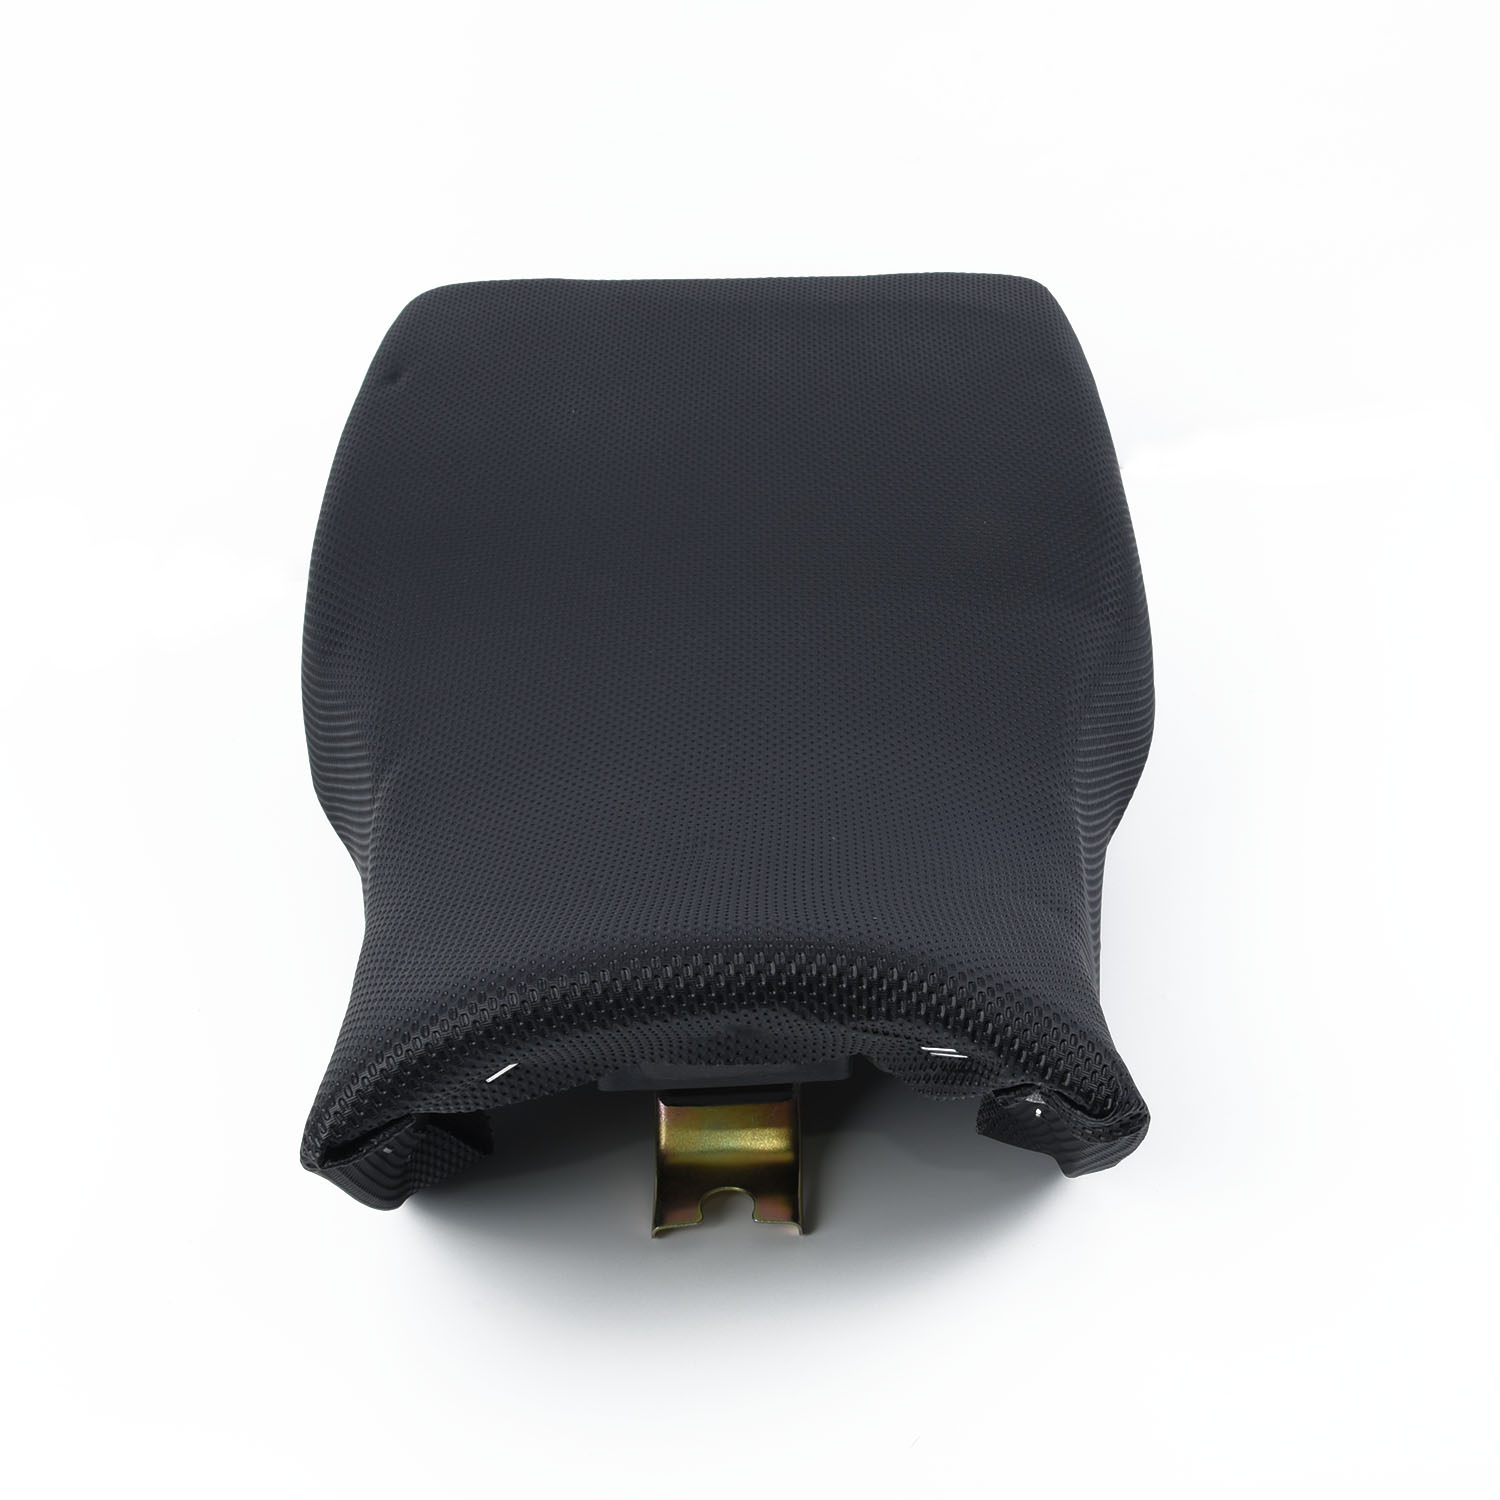 Image 2 - 460*270mm Black Seat Cushion High Quality Accessories for 50CC 70 90 110CC 150CC Chinese ATV SunL Eagle Seat Cushion Protector-in ATV Parts & Accessories from Automobiles & Motorcycles